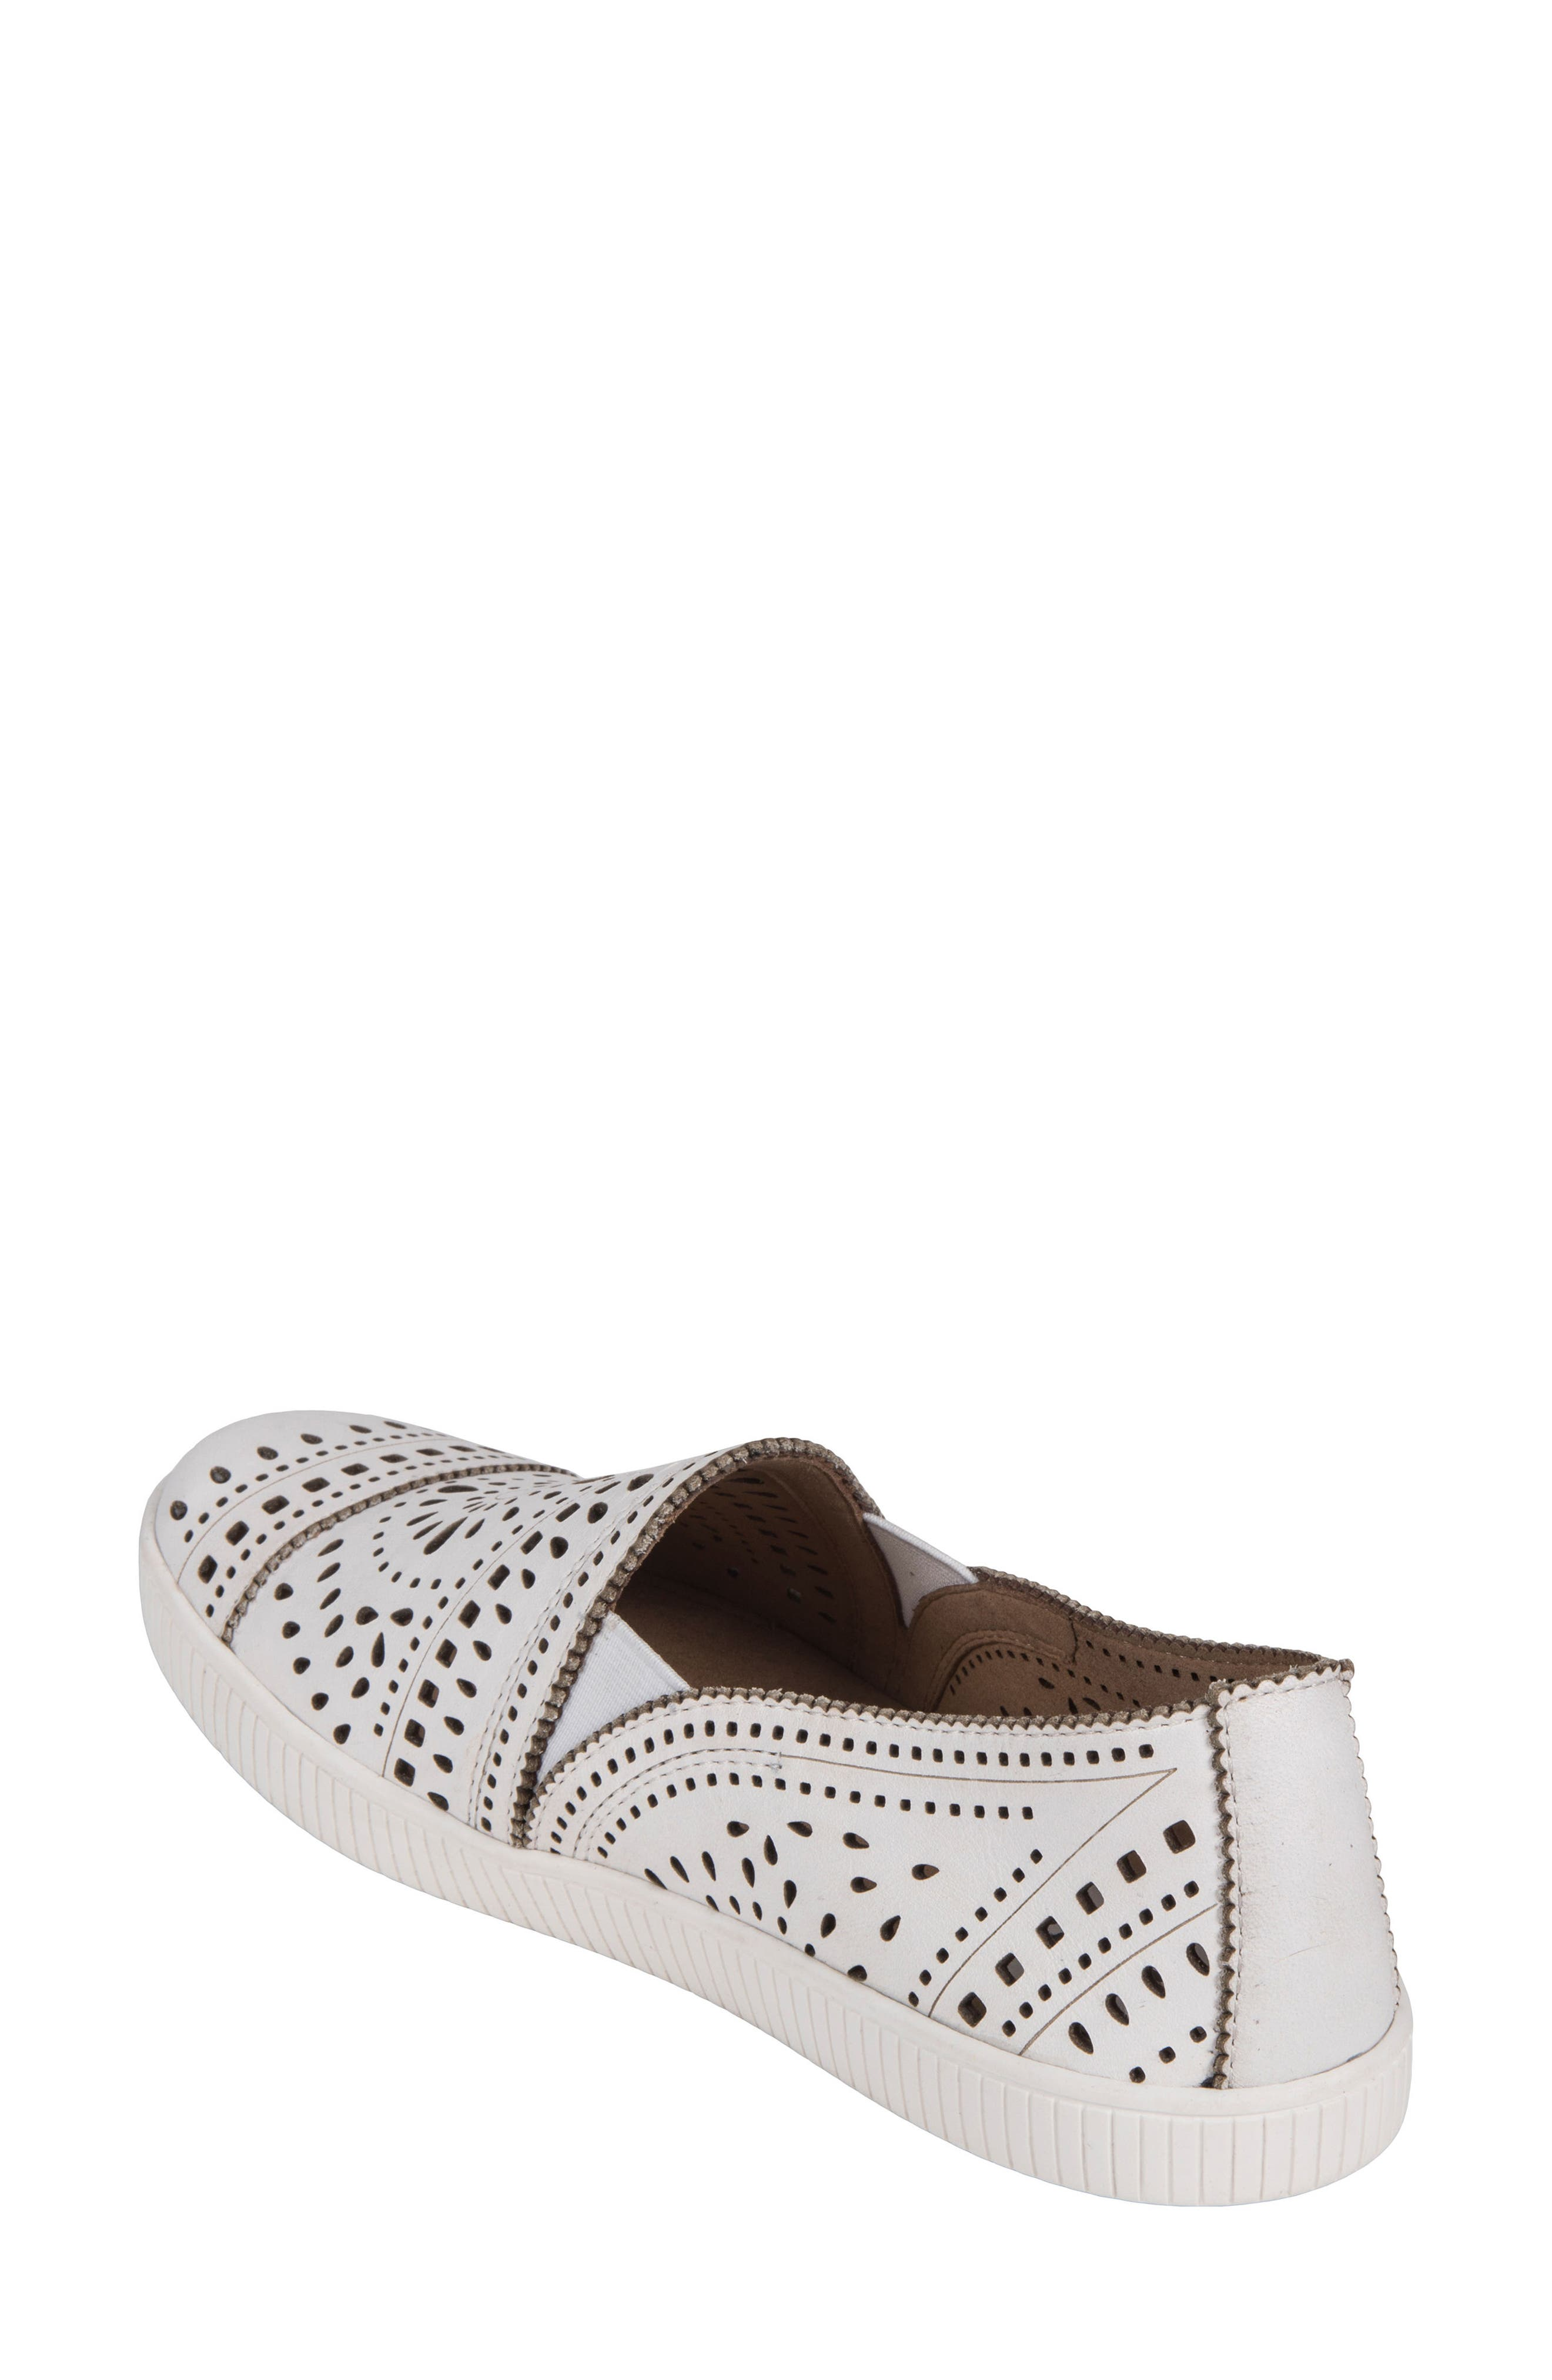 Tayberry Perforated Slip-On Sneaker,                             Alternate thumbnail 6, color,